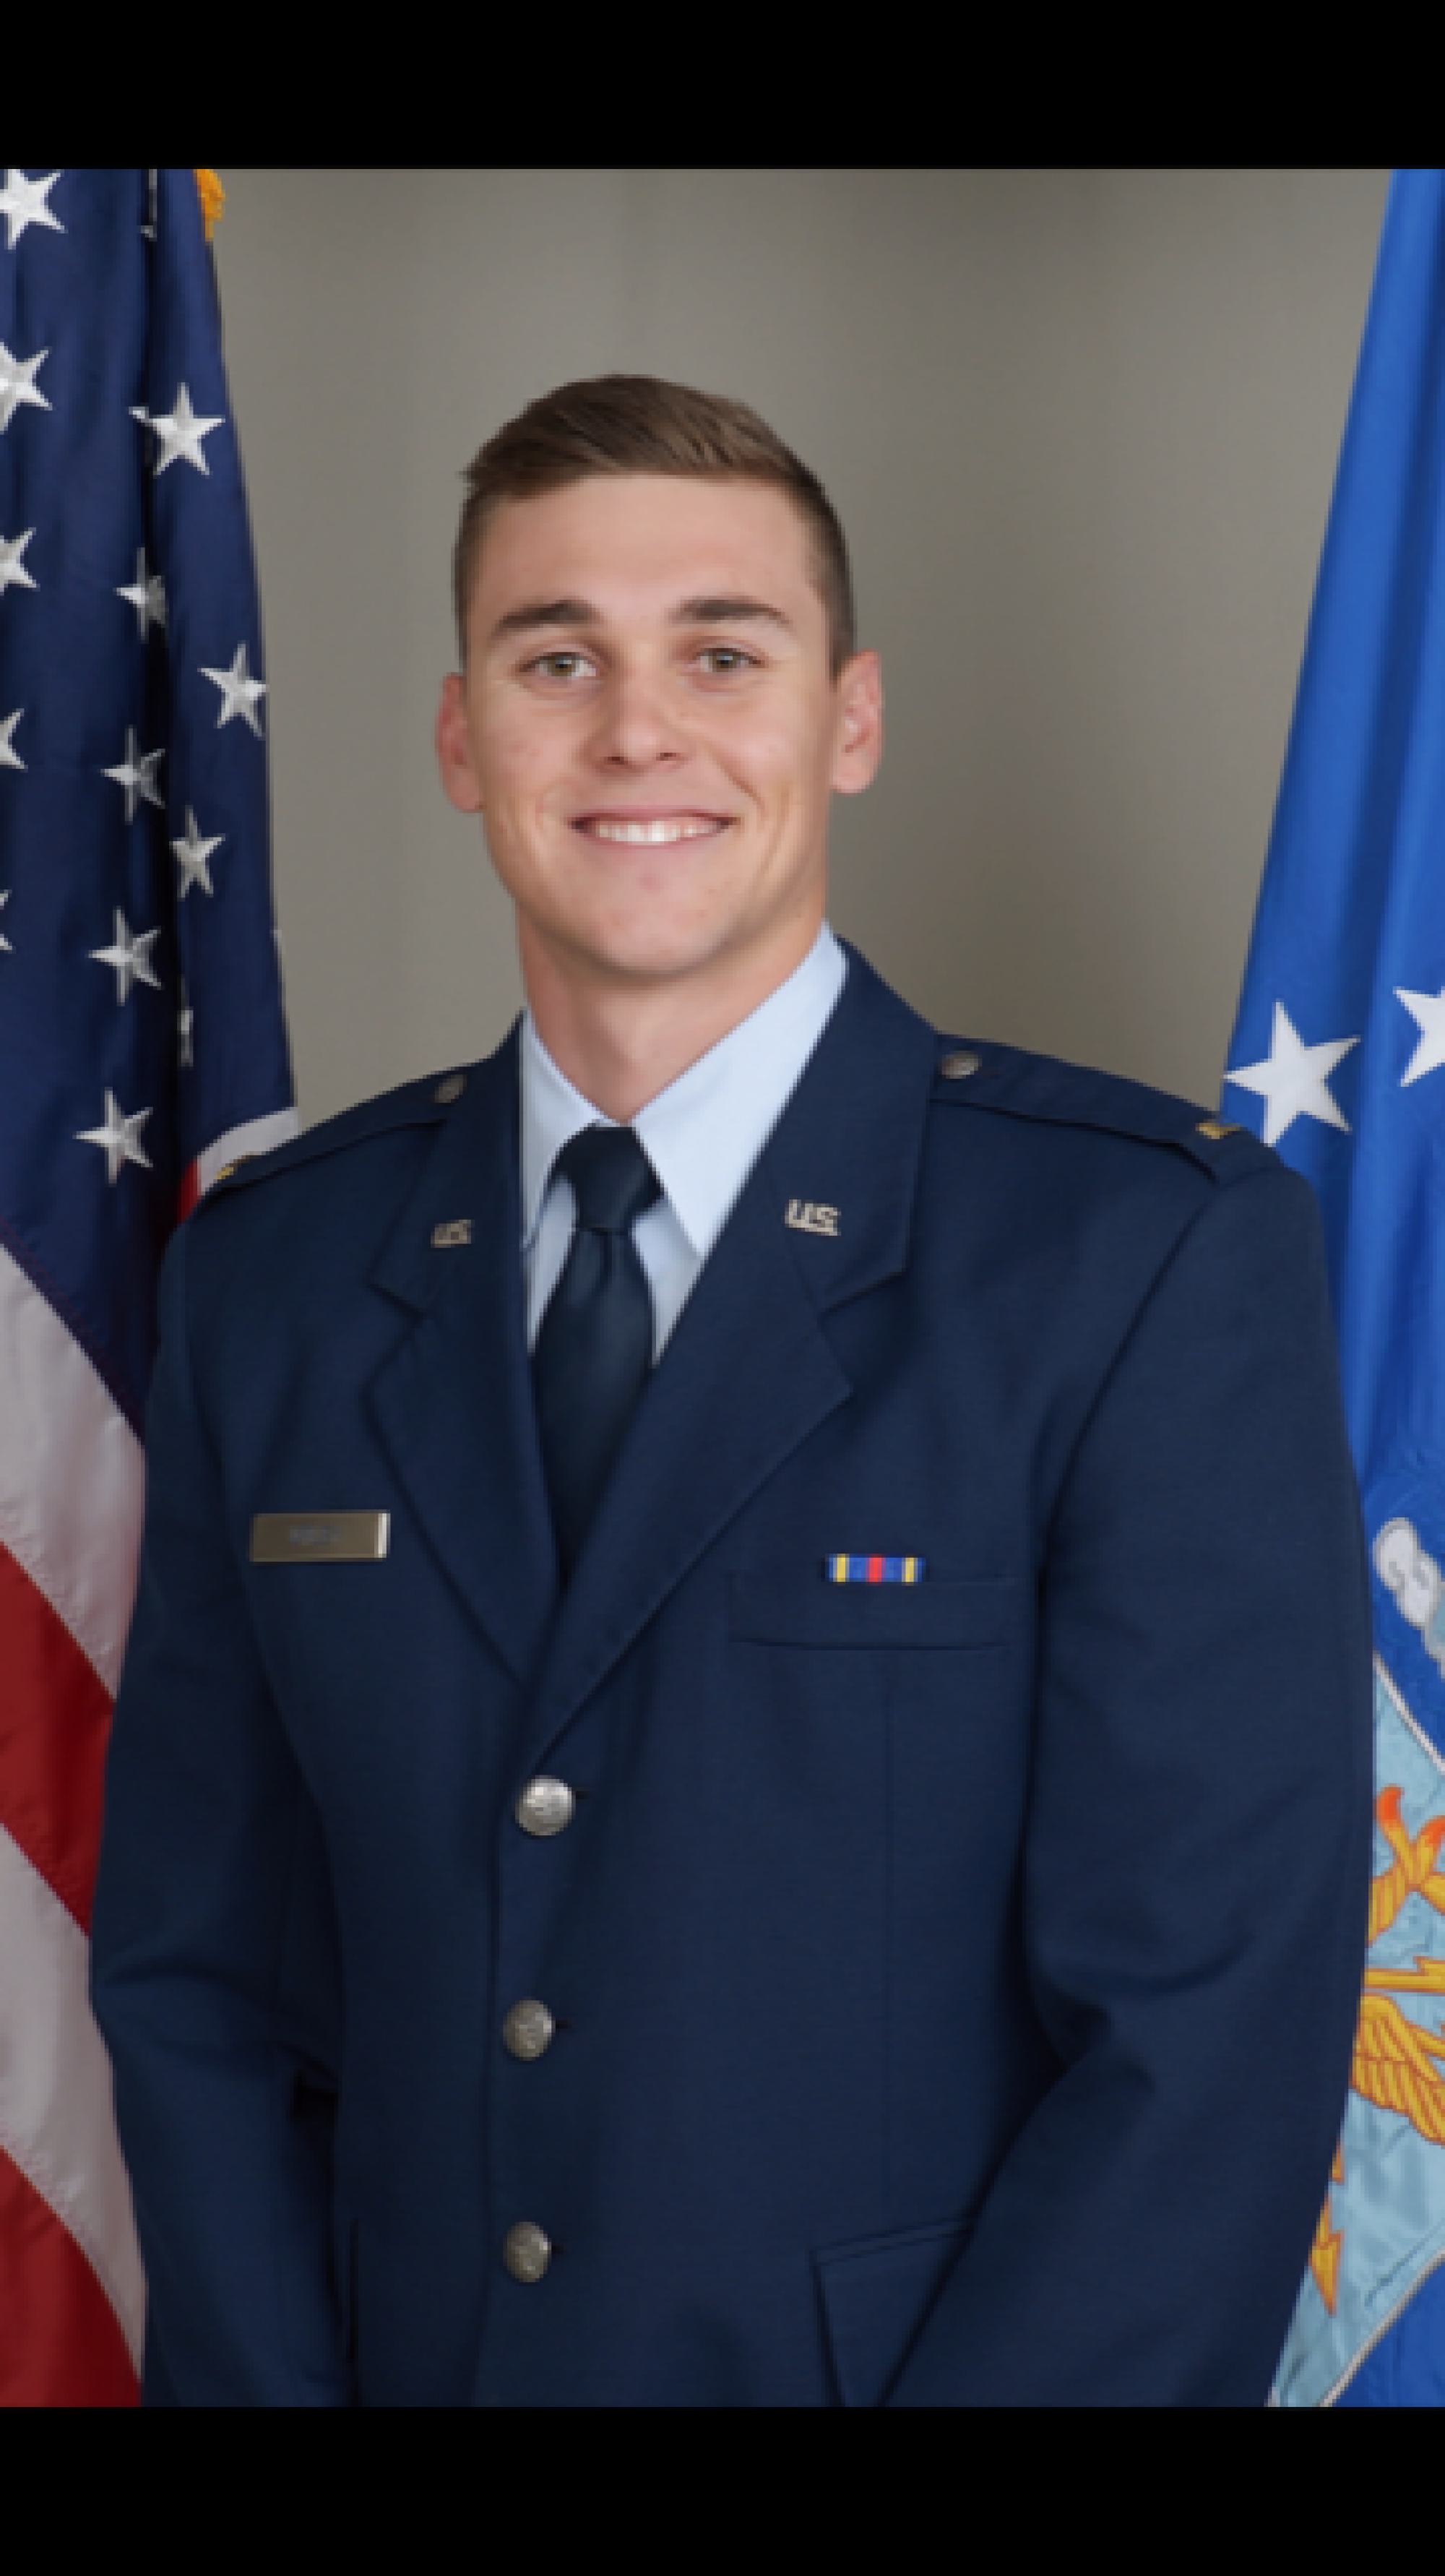 Clayton Utley graduated with a degree in criminal justice and is now stationed at Macdill Airforce Base in Tampa, Florida.